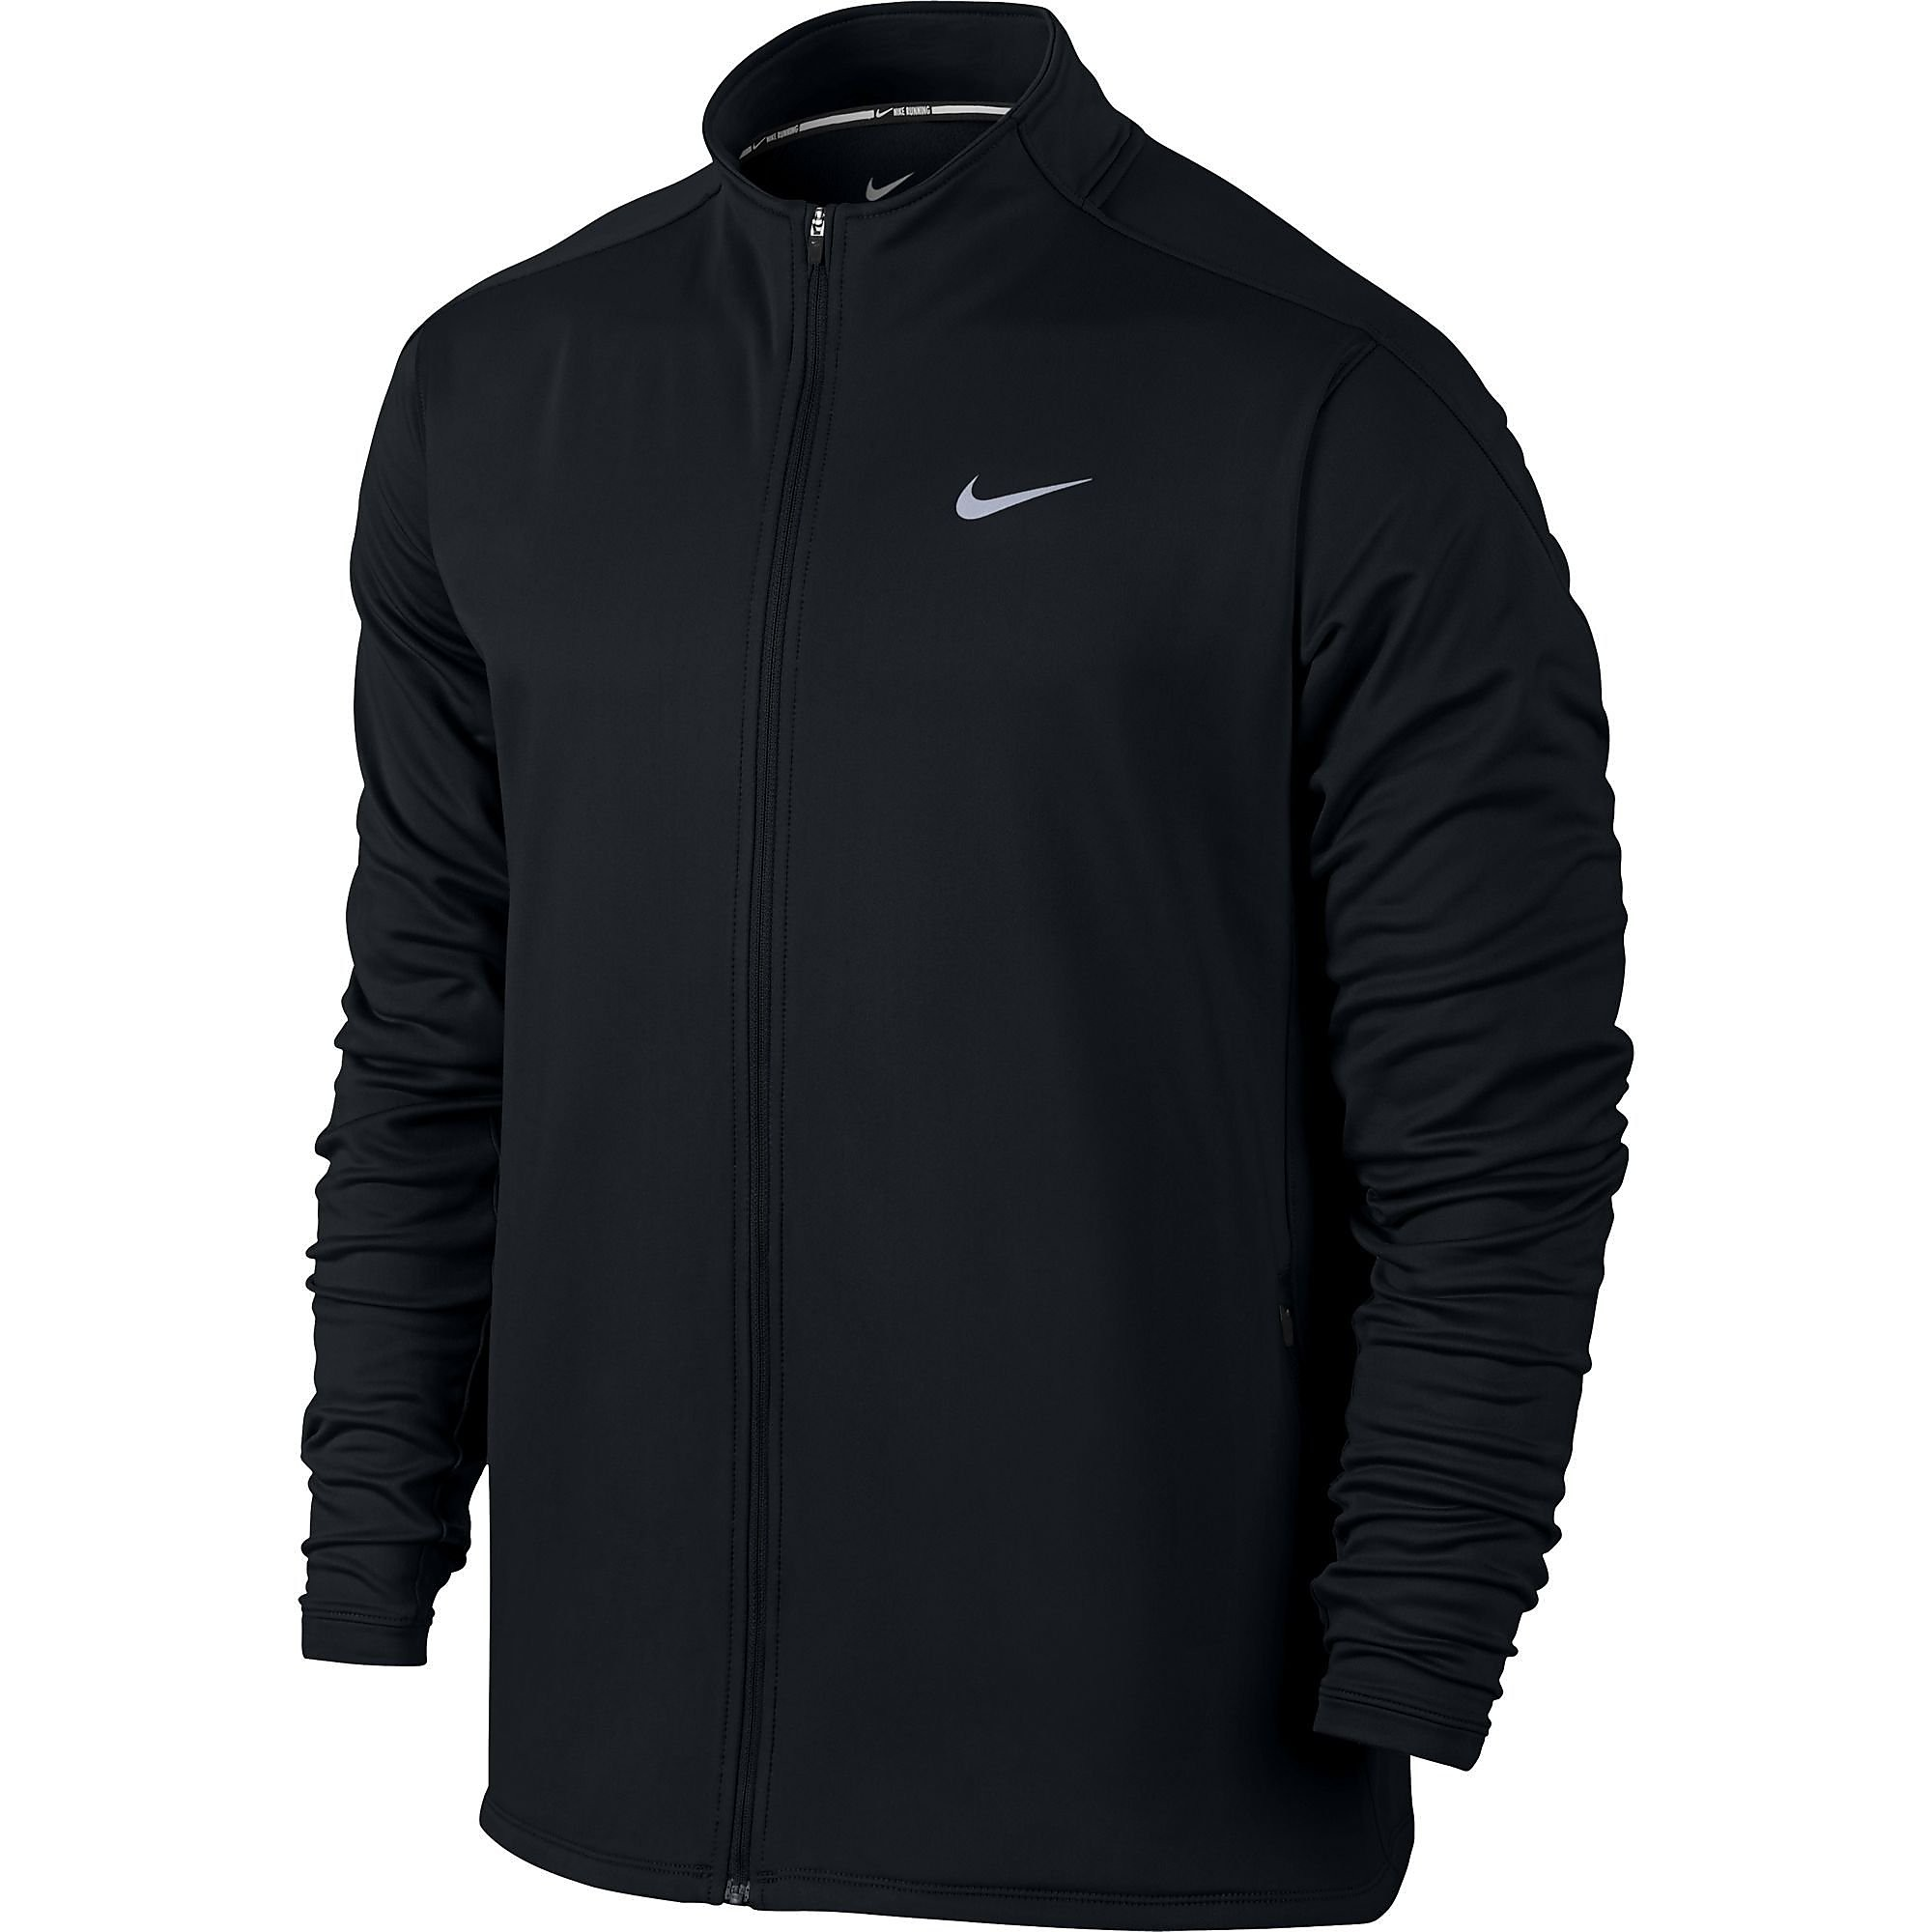 NIKE DRI-FIT THERMAL HARDLOOPJAS